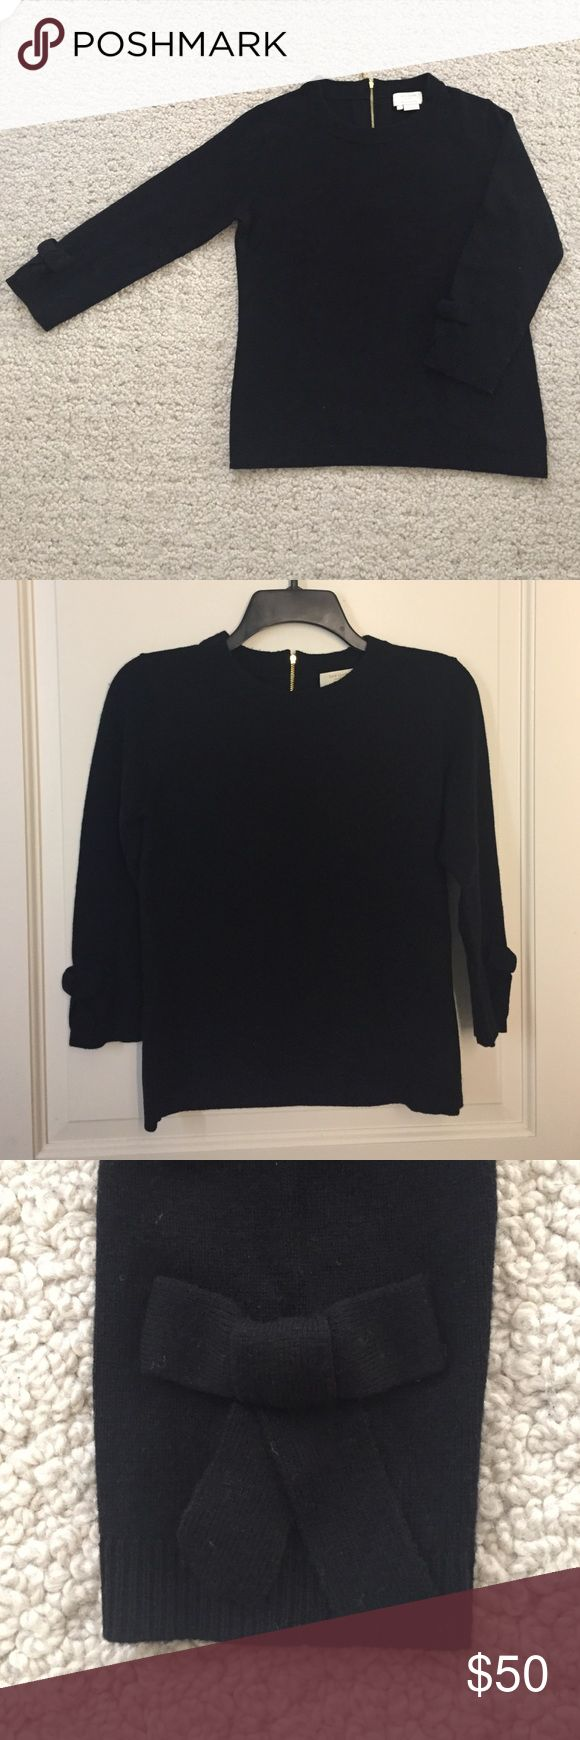 Kate Spade Black Wool/Cashmere Crewneck Sweater, S This black Crewneck Kate Spade Sweater is a size small. 90% wool, 10% cashmere. Three quarter sleeves with ribbon details. Gold zipper in the back hits mid-back. Sweater hits at the top of the hip. Size small. Dry clean only kate spade Sweaters Crew & Scoop Necks